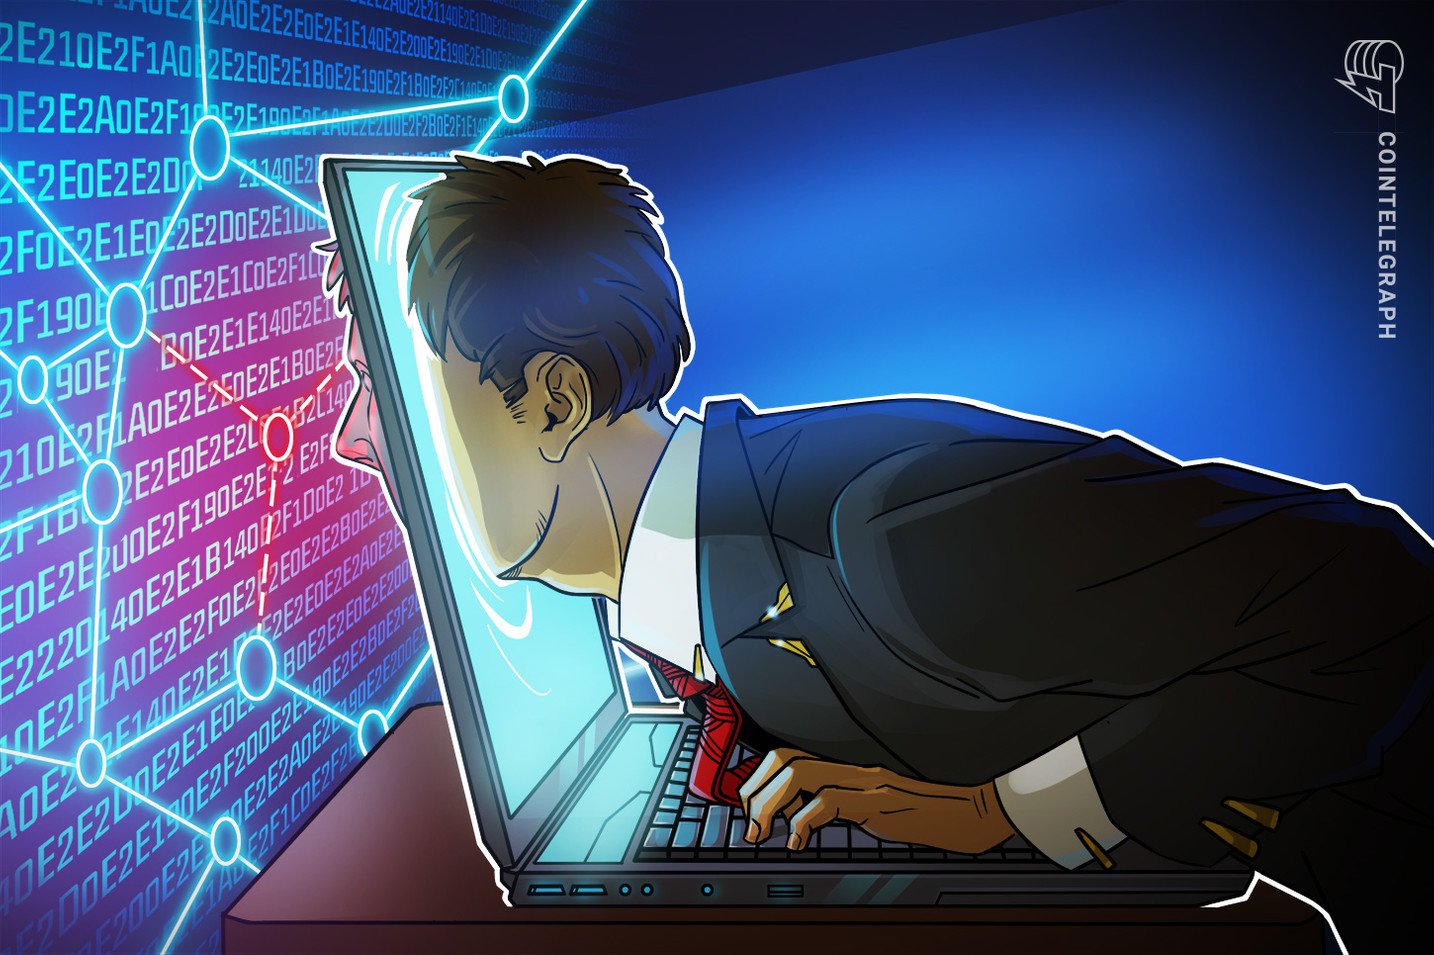 White hat potentially saves SushiSwap $350M by finding 'obvious' exploit